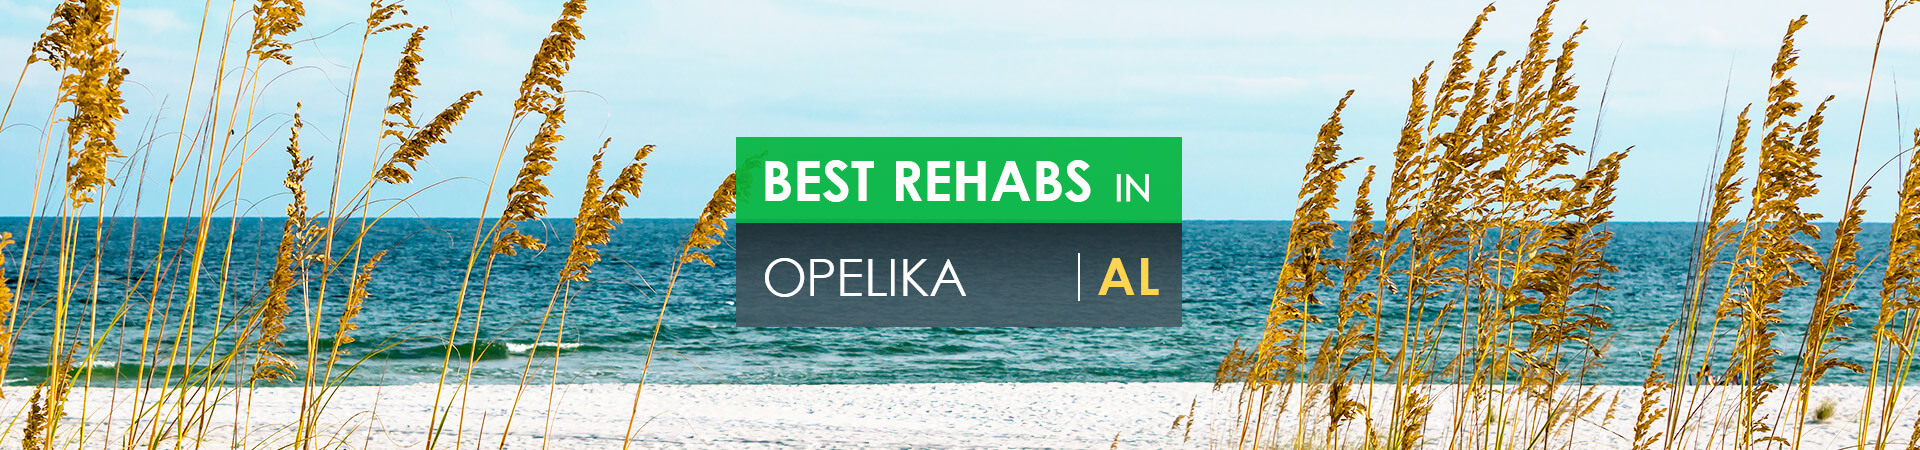 Best rehabs in Opelika, AL